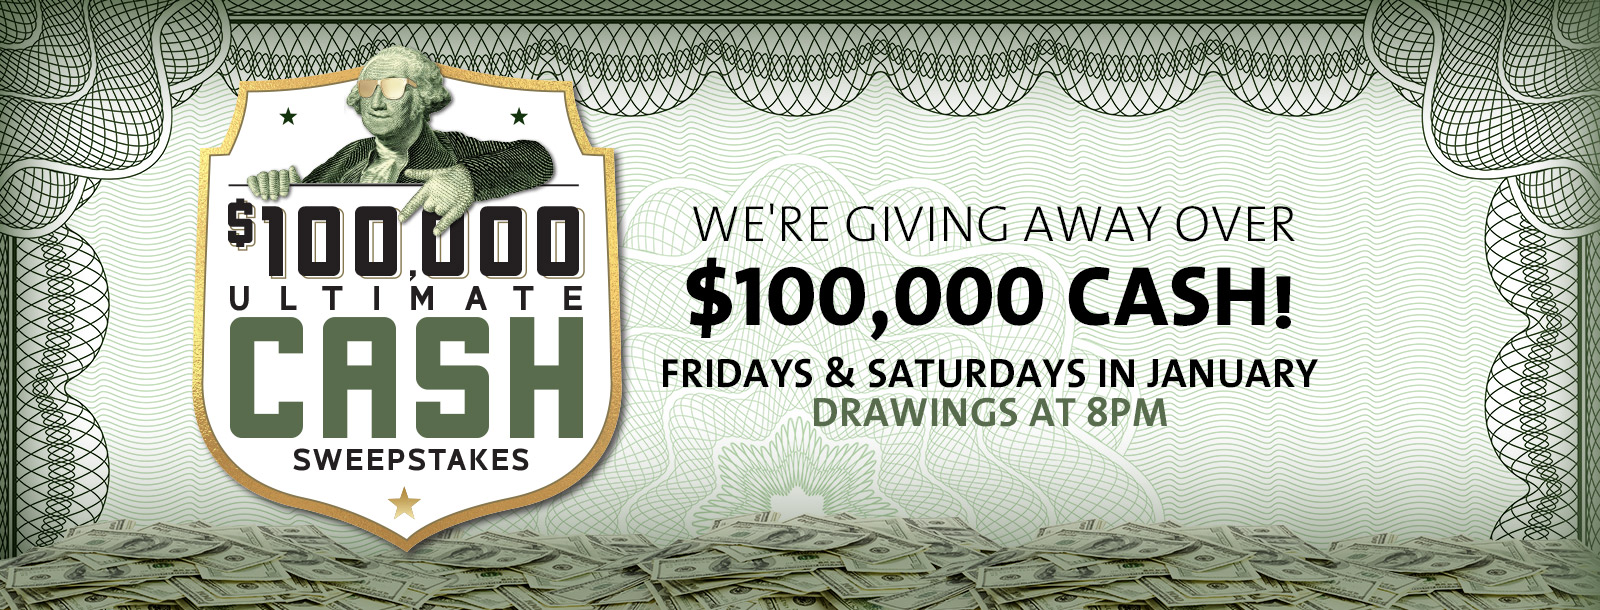 100k ultimate cash sweepstakes promotion